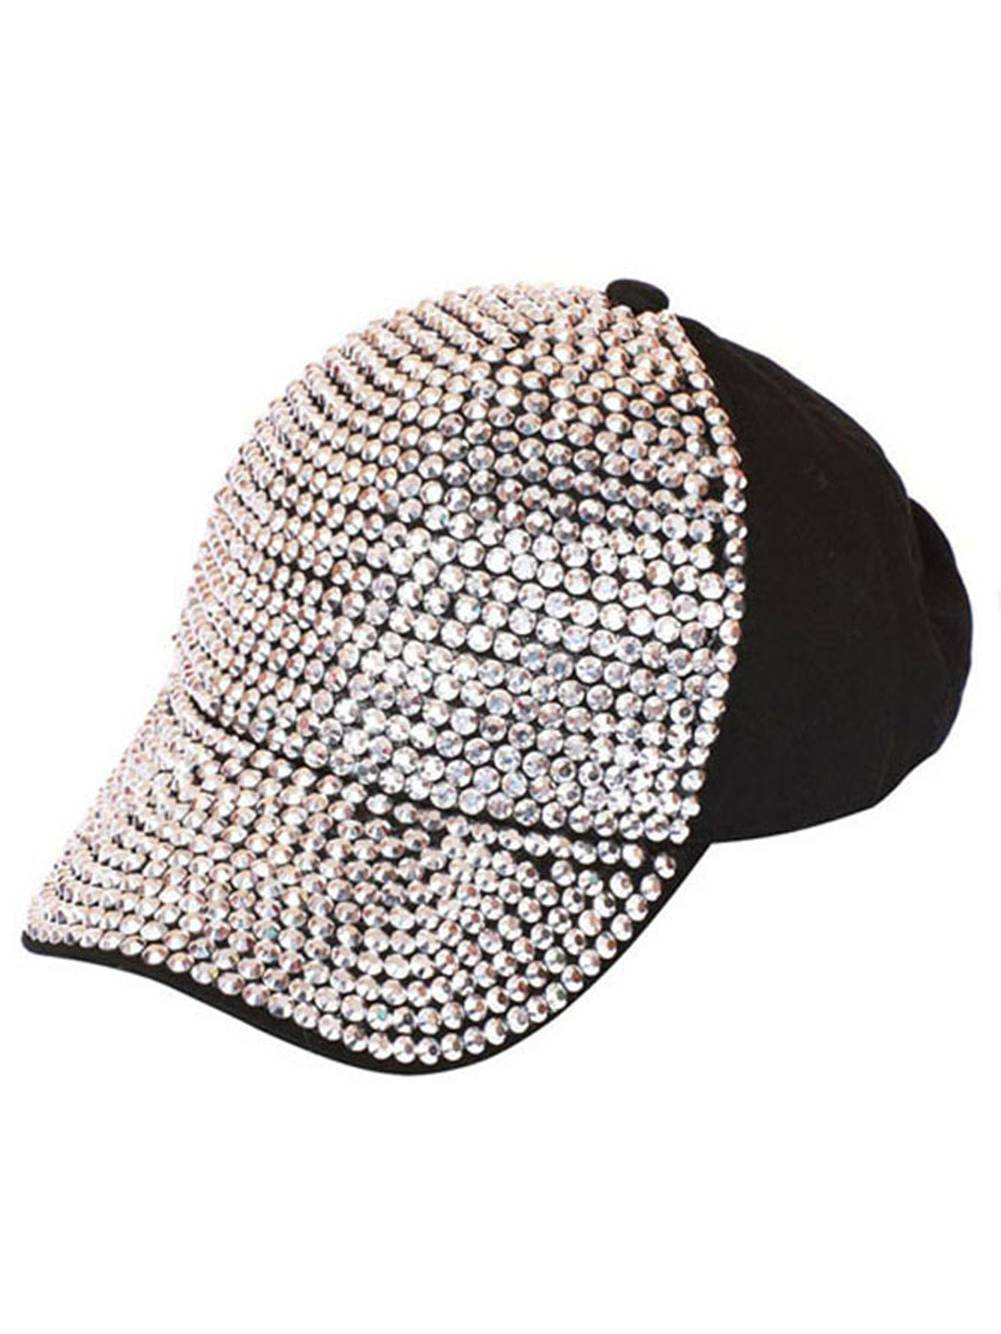 Studded Baseball Cap - Black 342bb8426b7